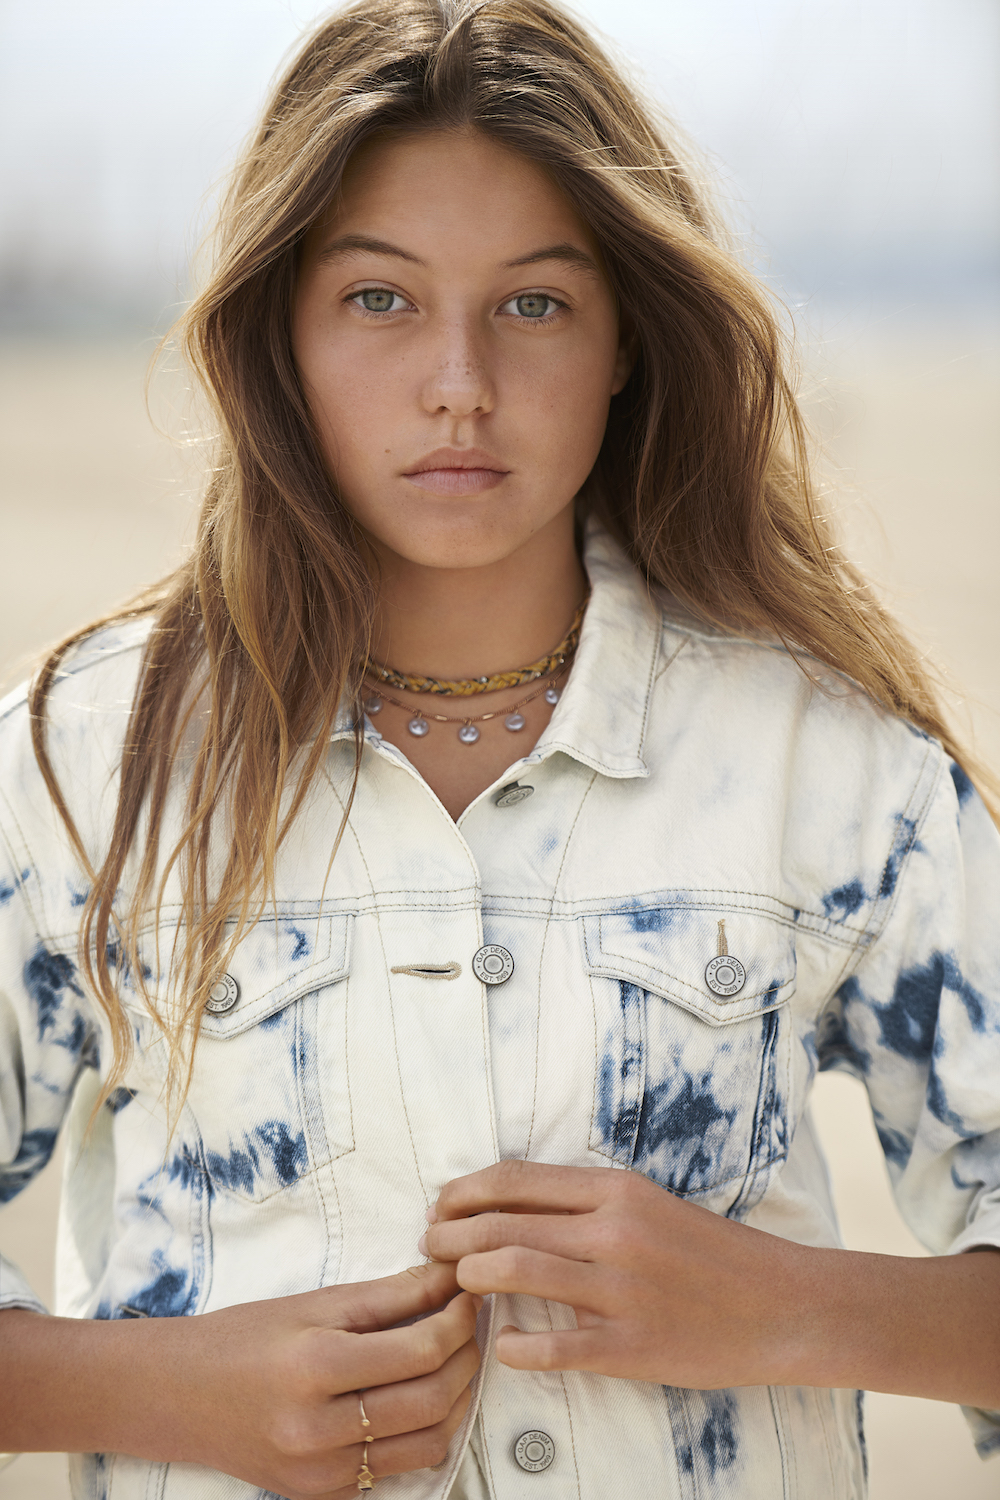 Gap announced its new Gap Teen collection featuring responsibly made garments that save water and waste, available in girls, sizes 8-16.